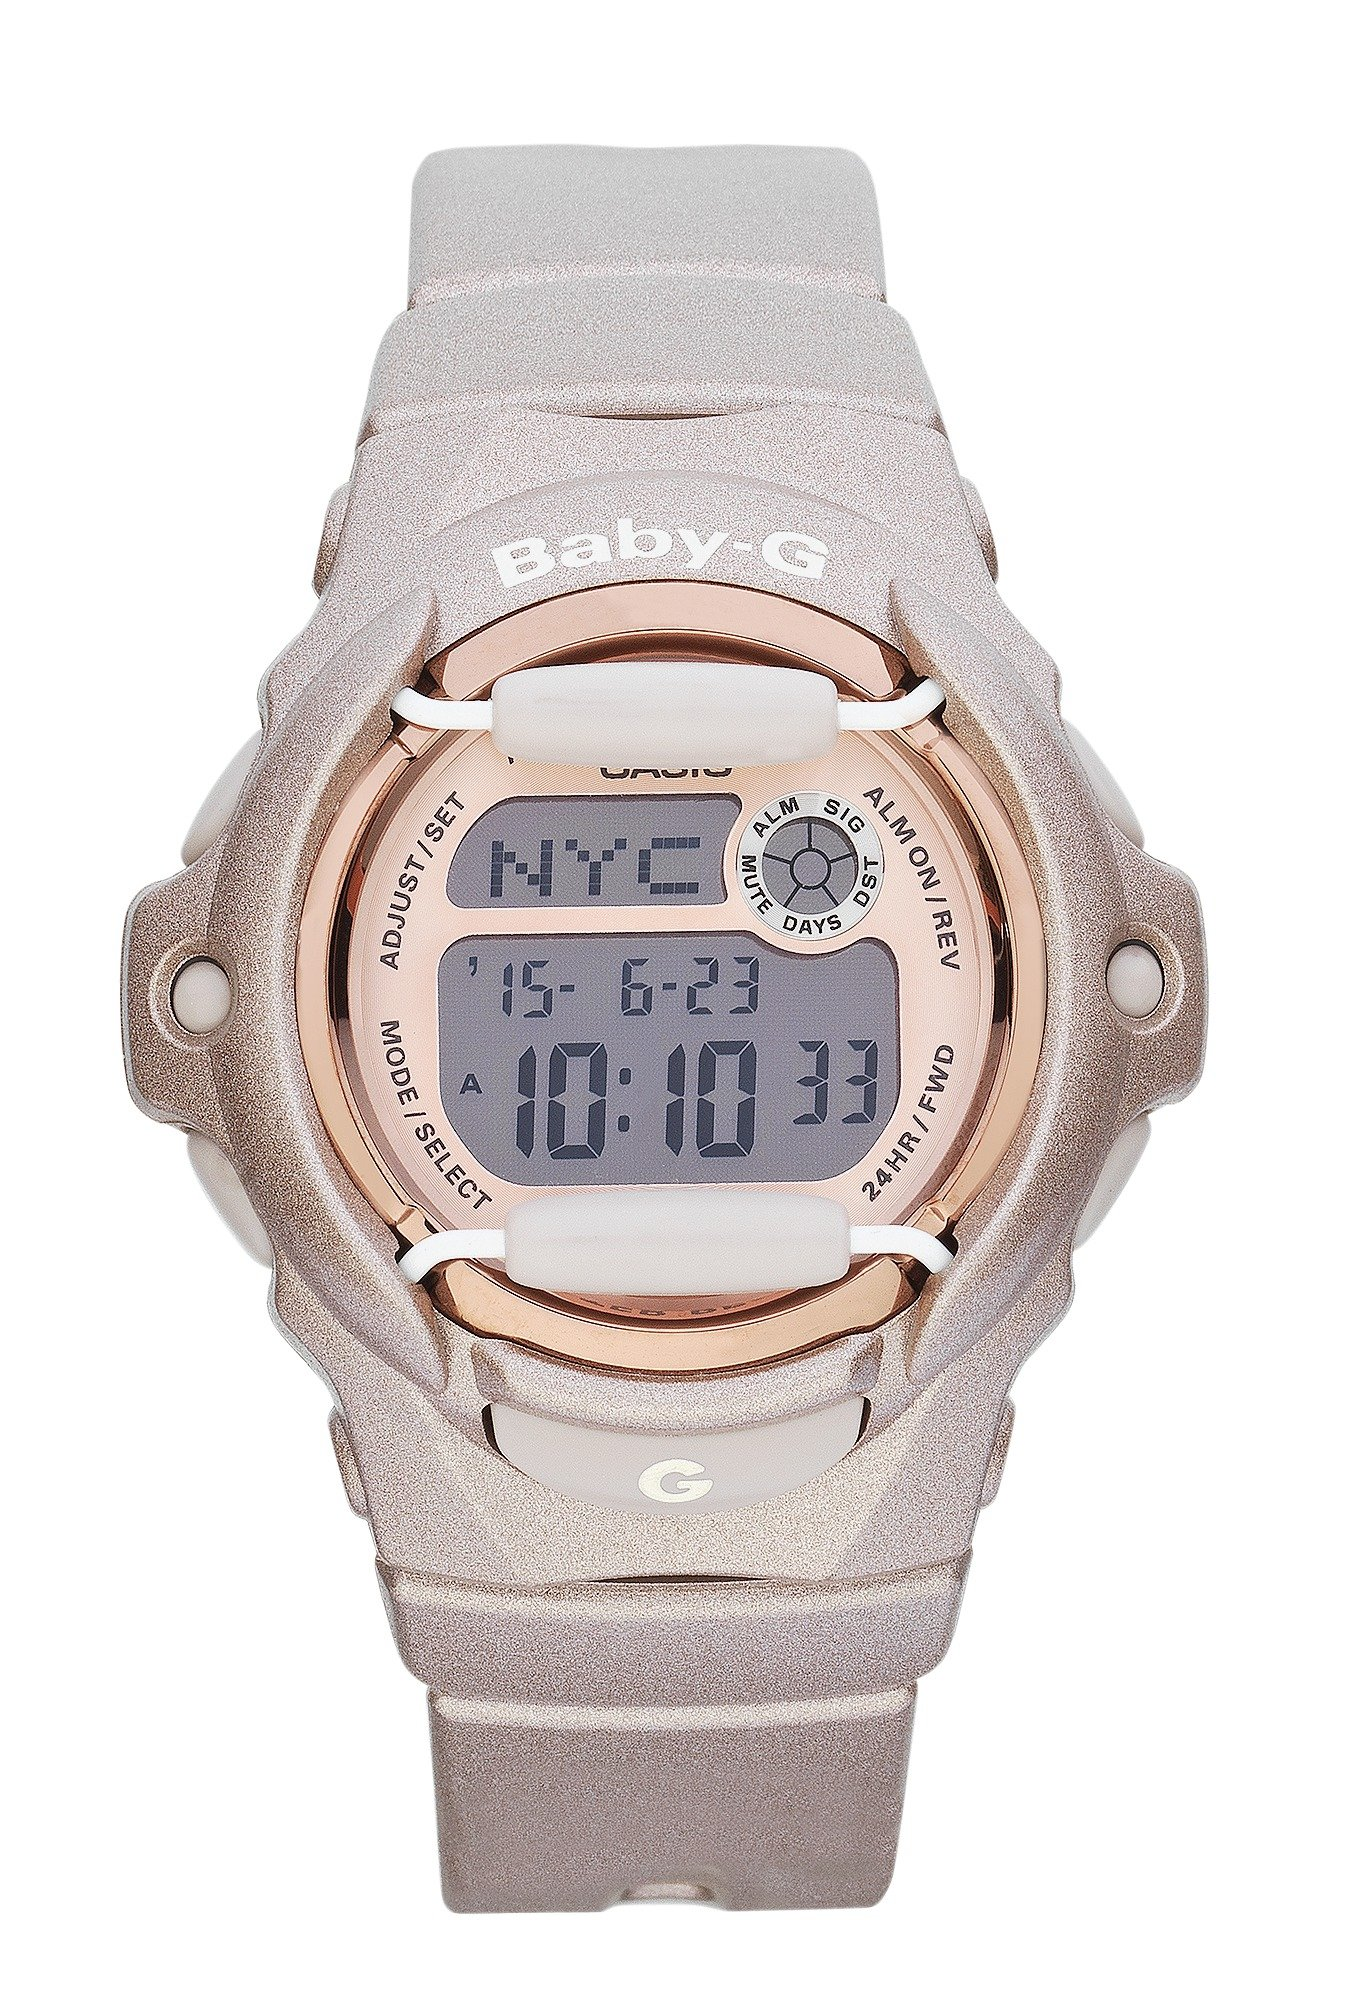 Image of Casio - Baby-G 25 Page Telememo